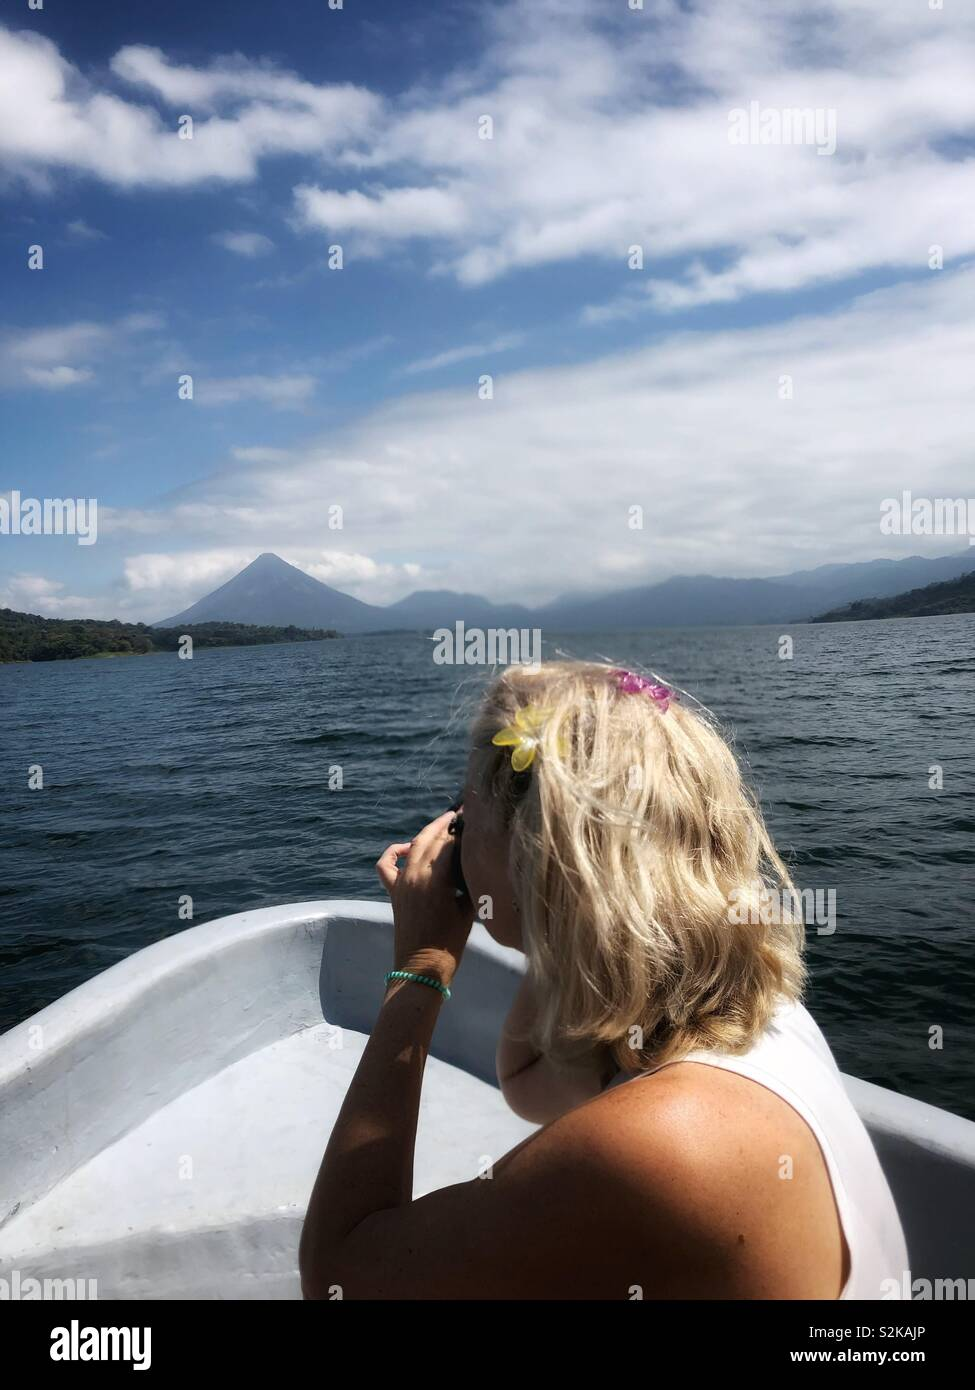 A woman taking photos from a boat on Lake Arenal in Costa Rica. - Stock Image